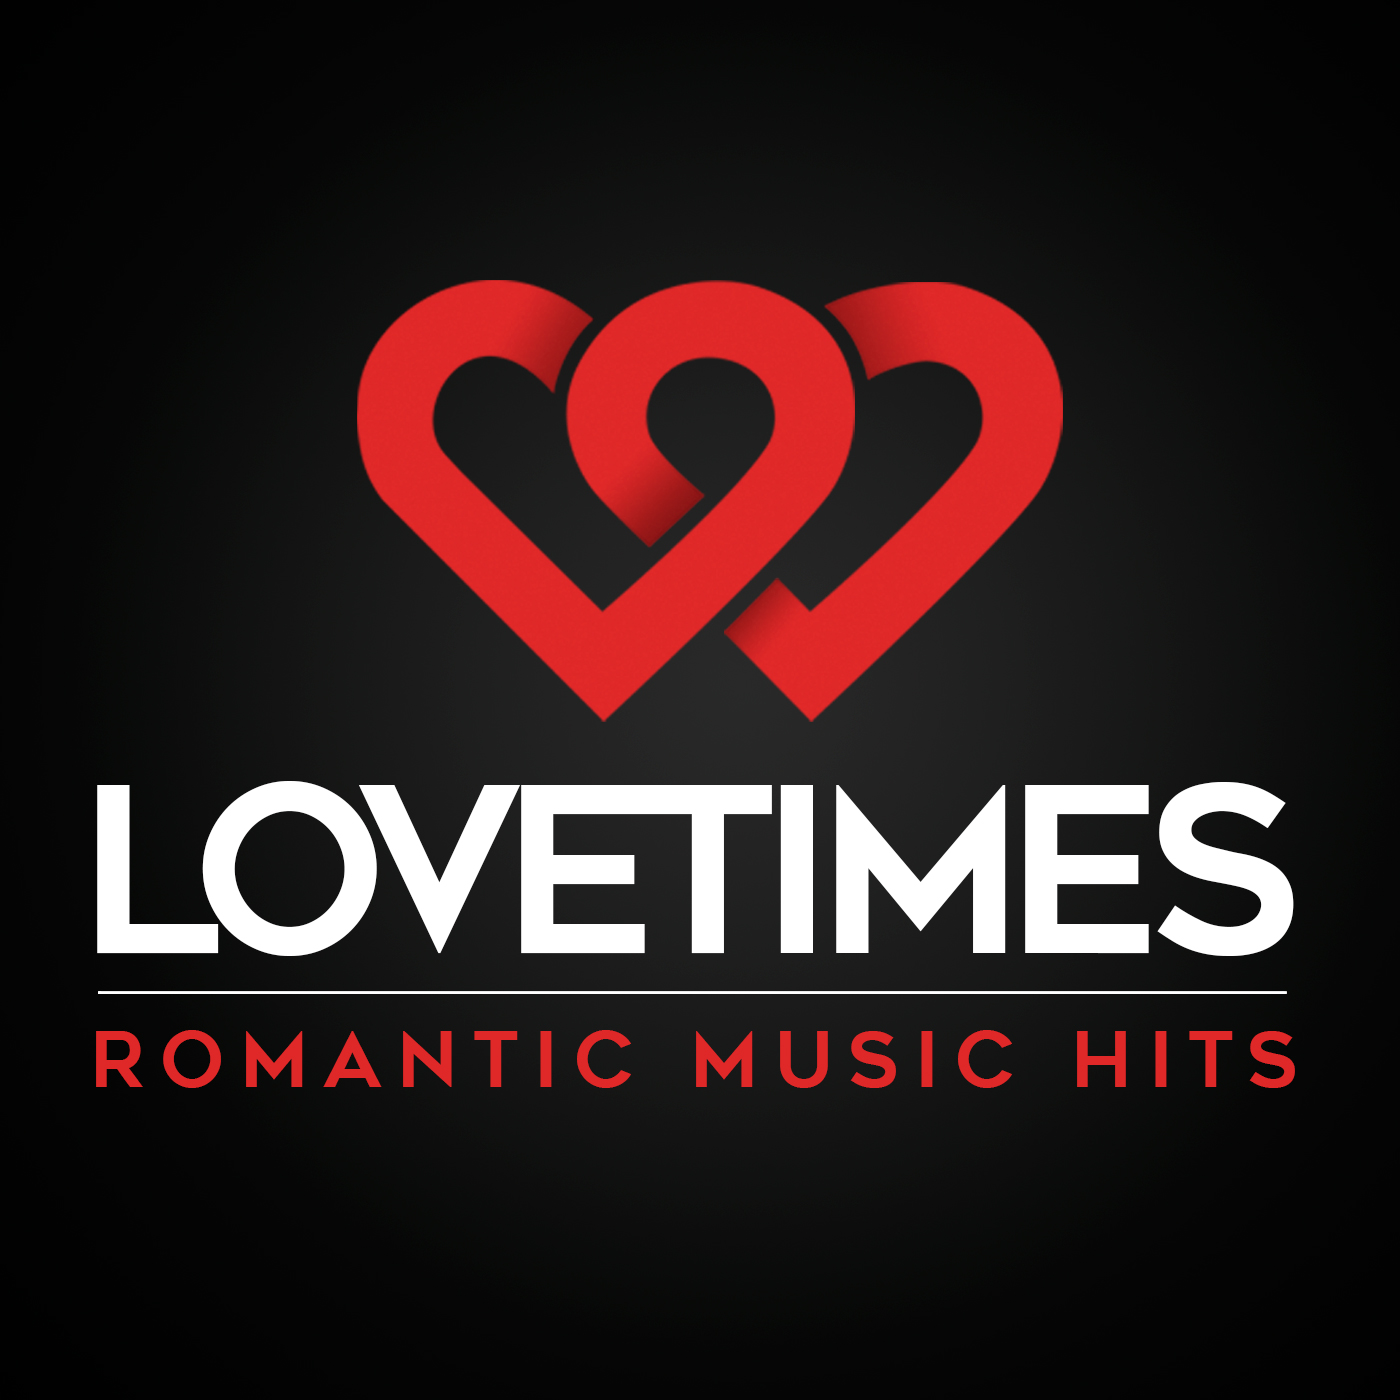 LOVETIMES | Romantic Music Hits (32 AAC+)